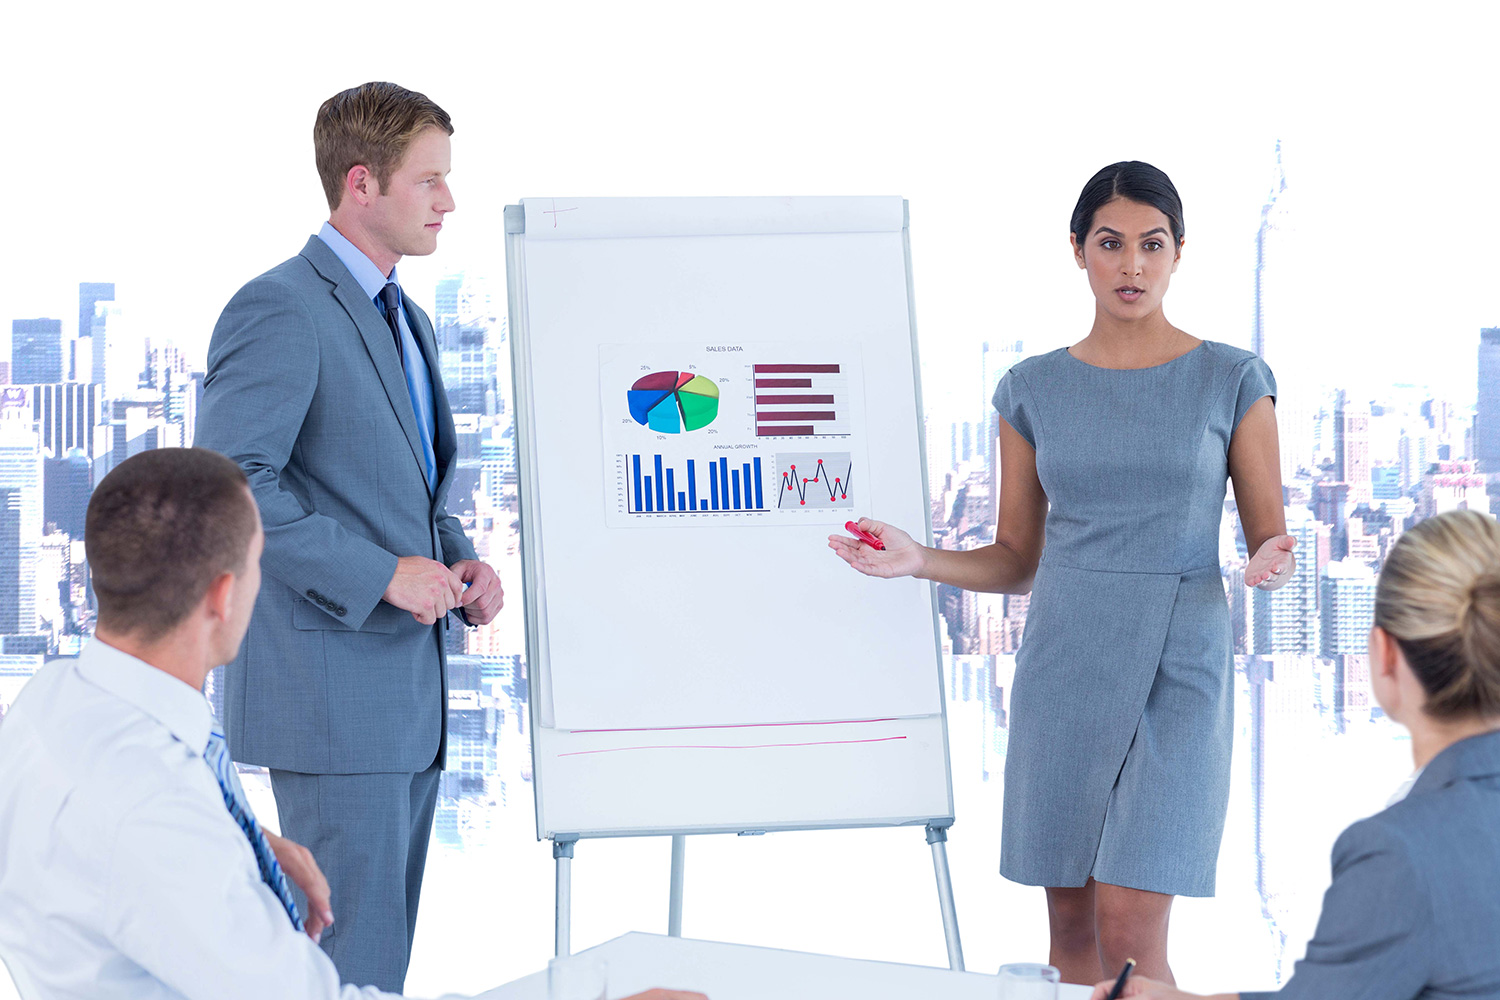 business development and profitability - Driving sustained business development and profitability for insurance industry